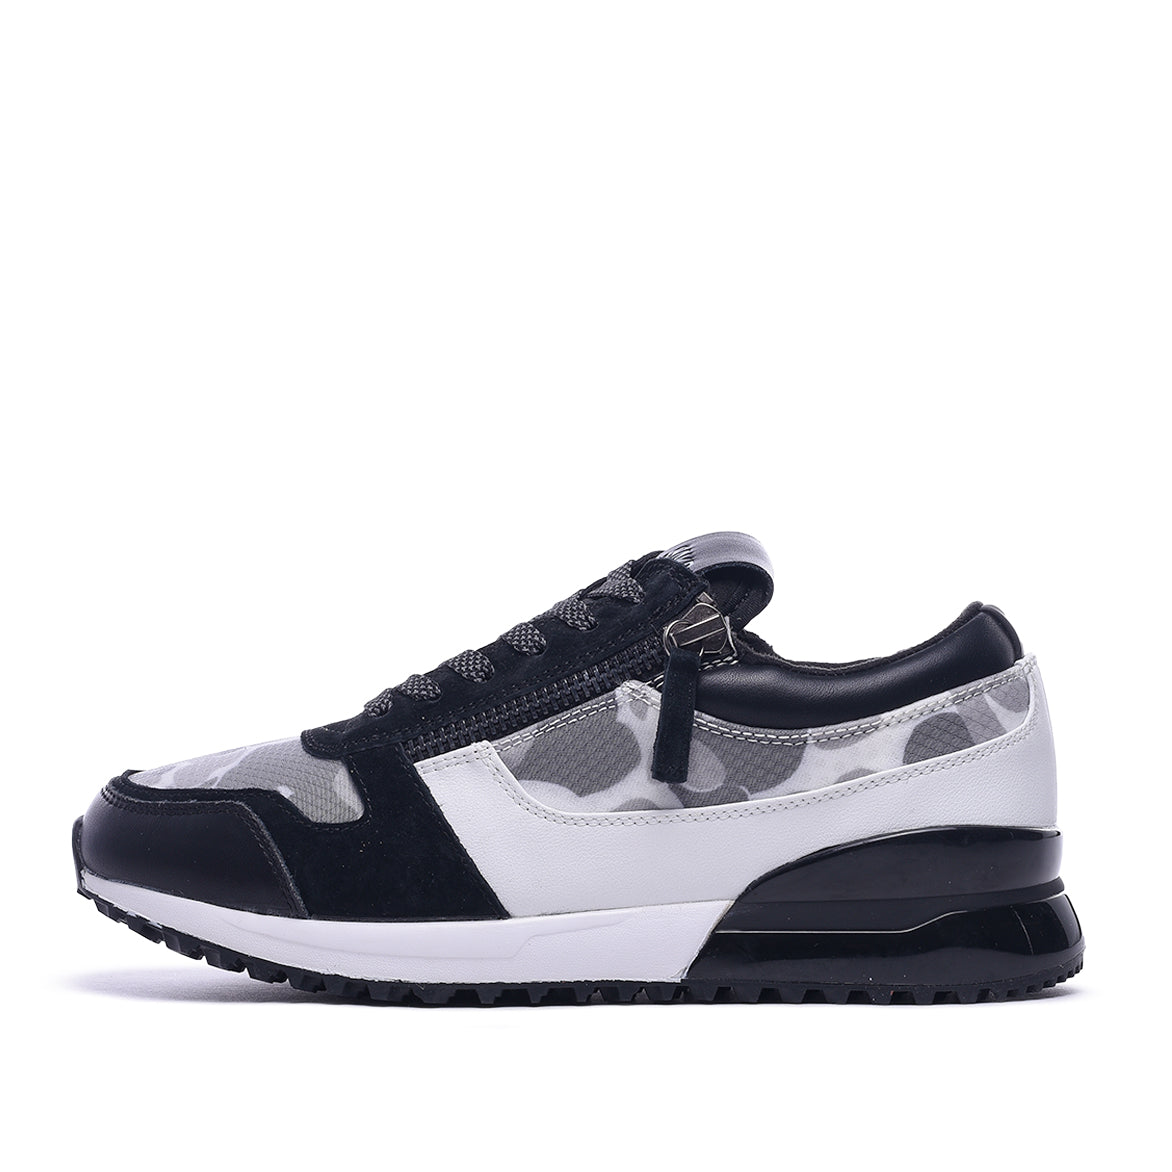 RODEO 1.5 - BLACK / GREY CAMO